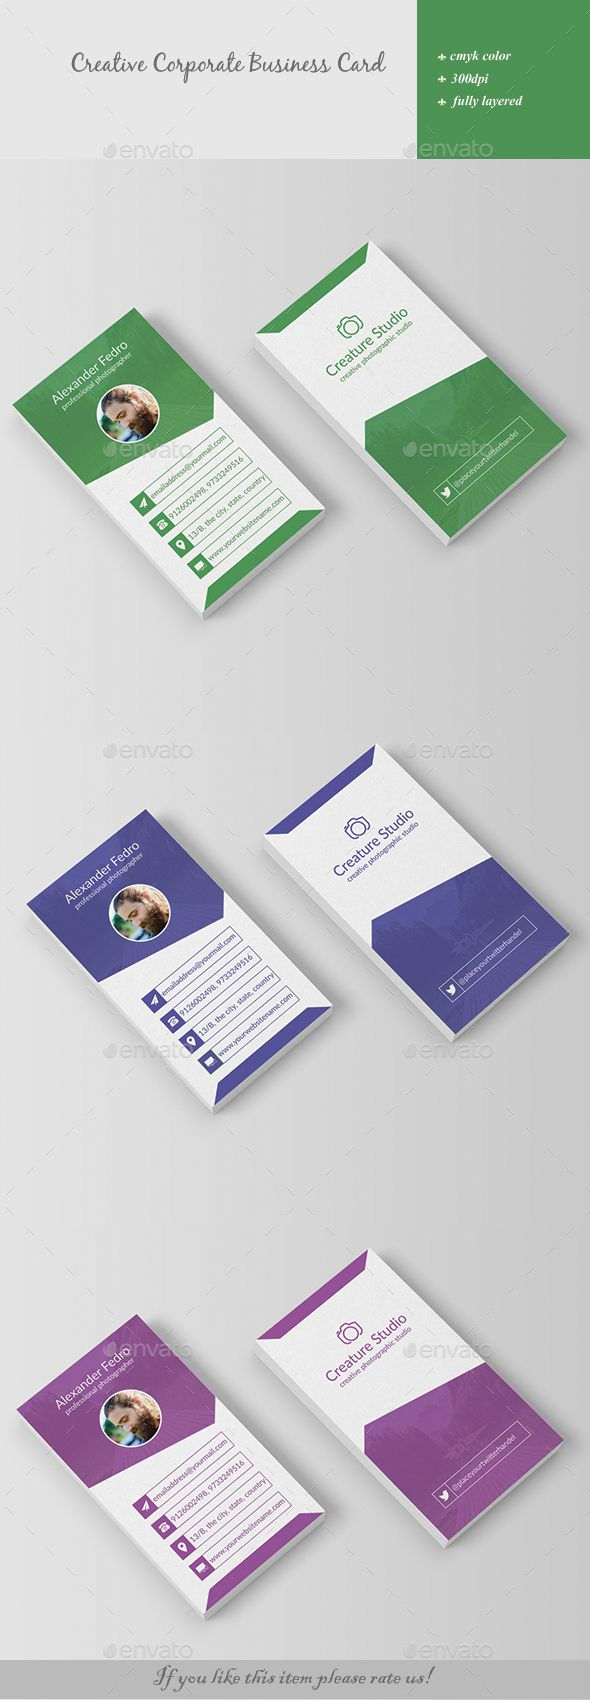 Creative Corporate Business Card